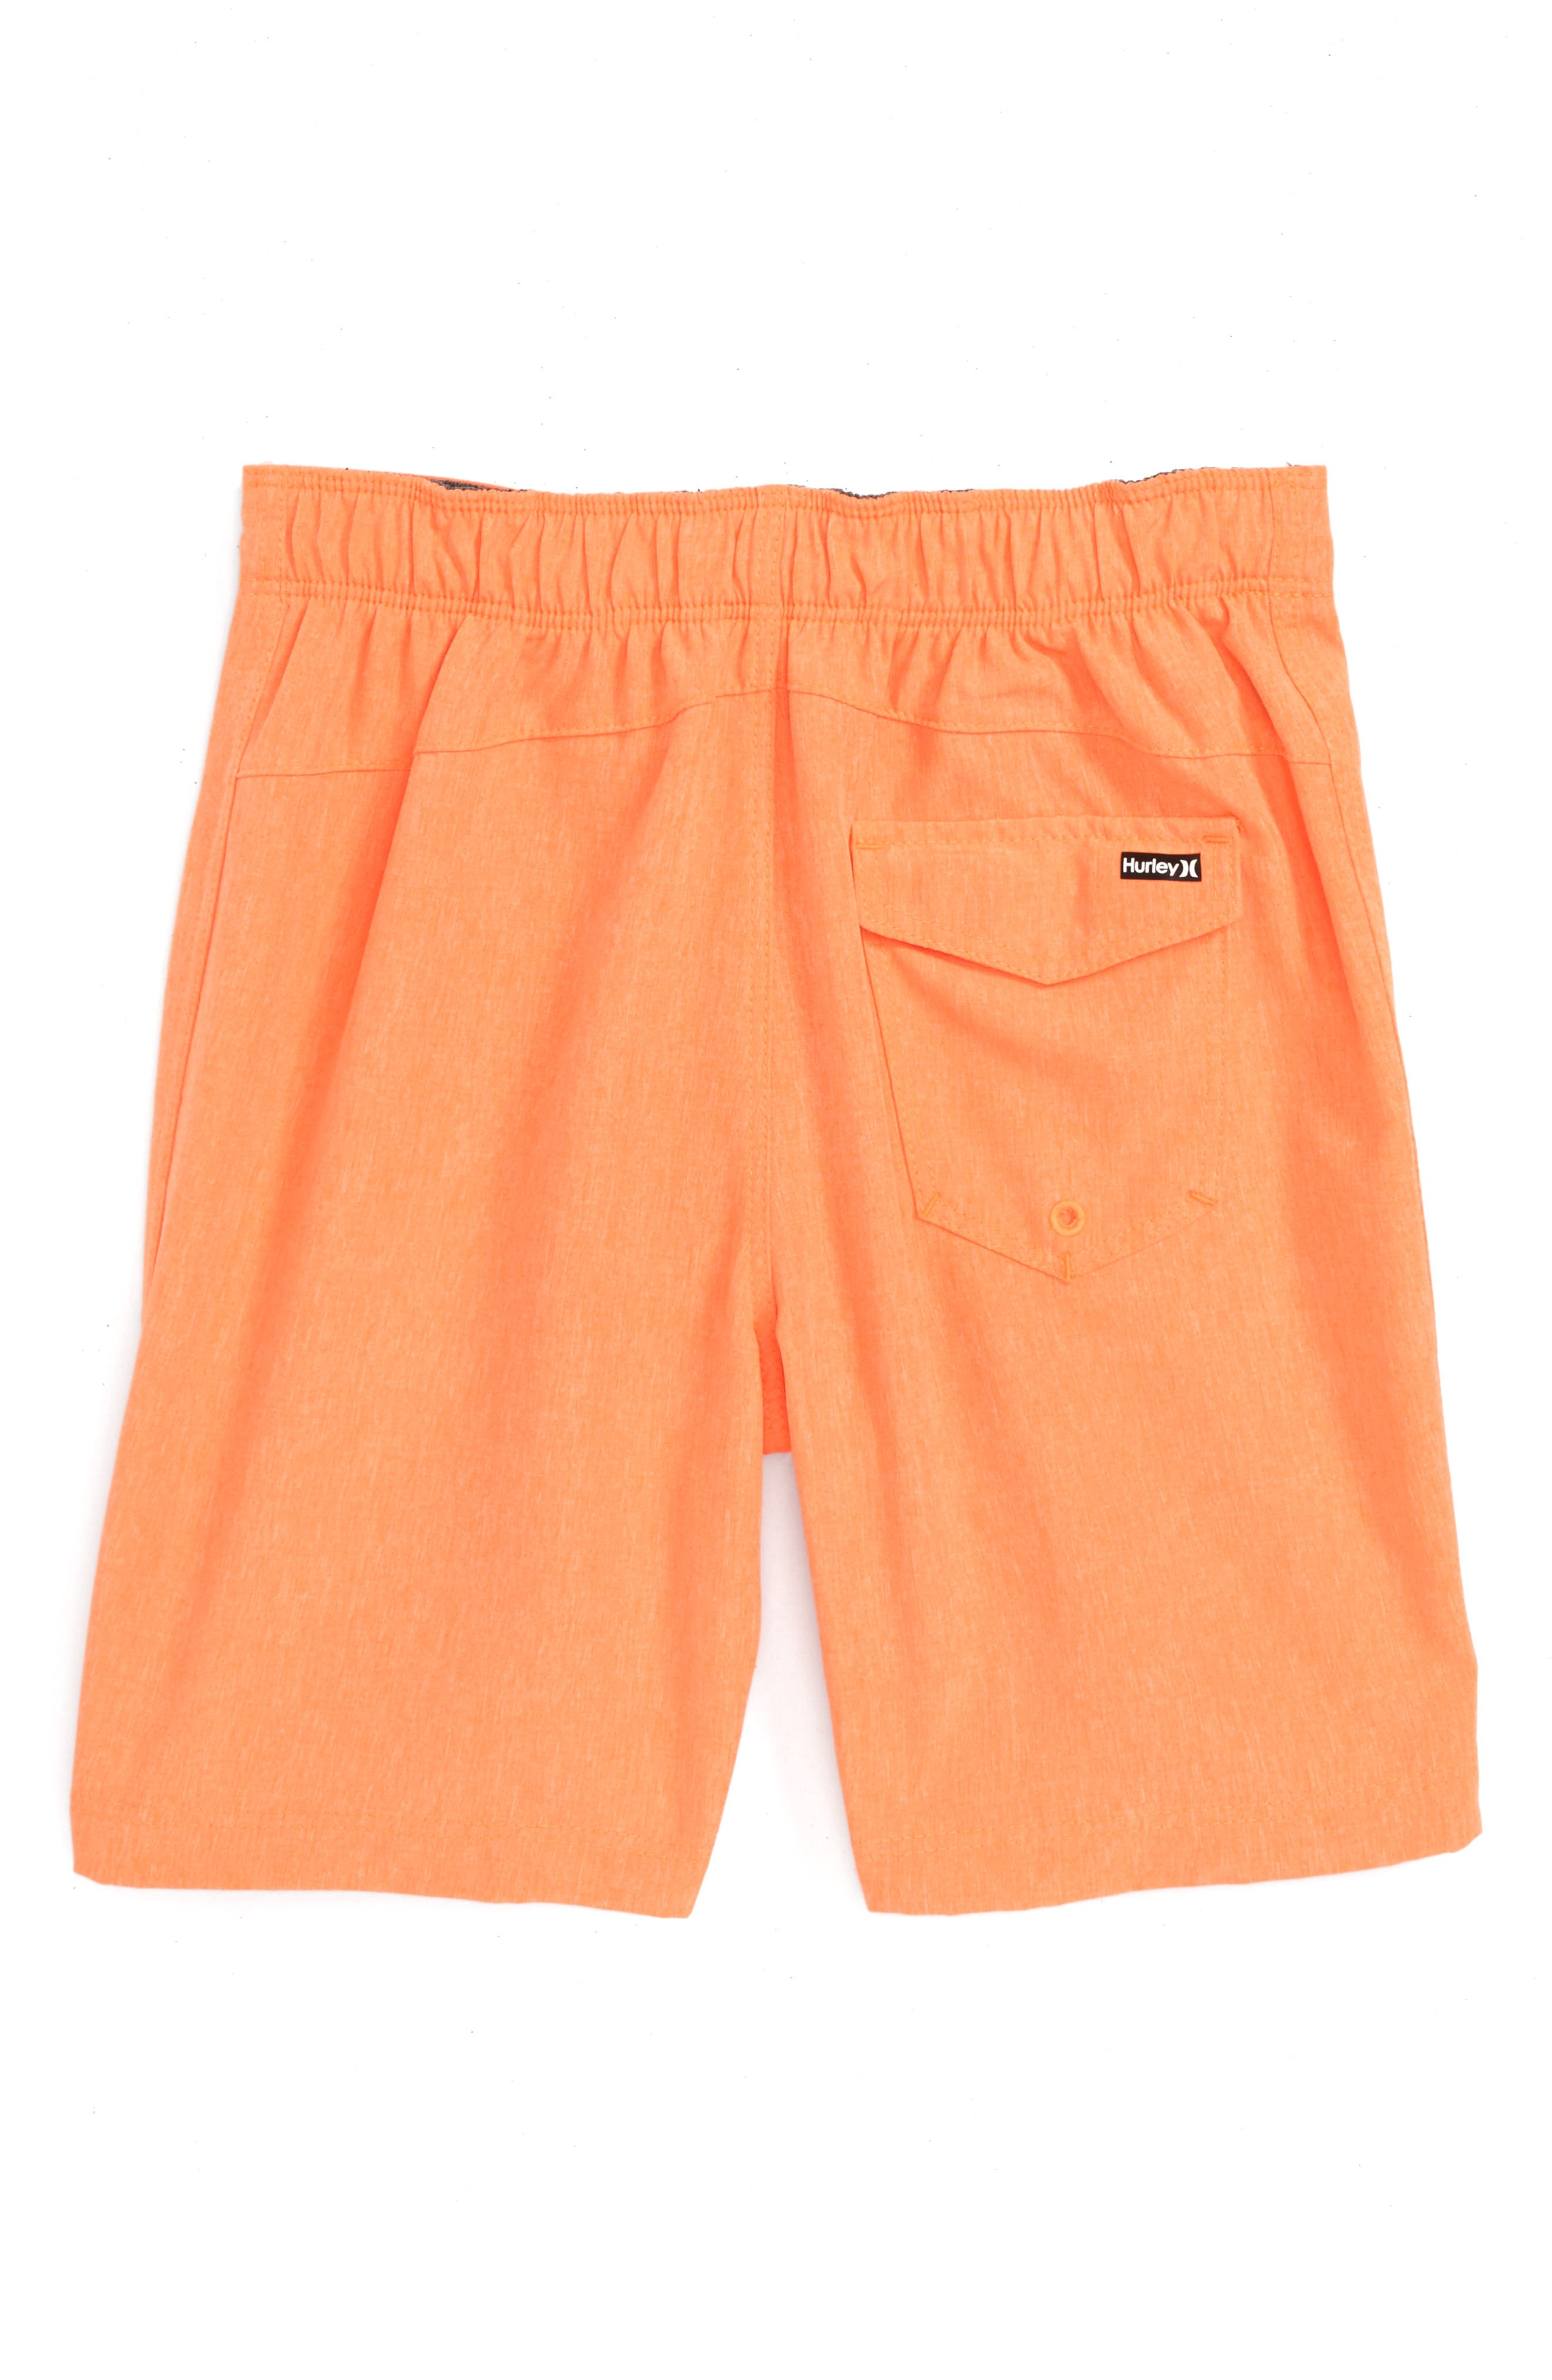 One and Only Dri-FIT Board Shorts,                             Alternate thumbnail 10, color,